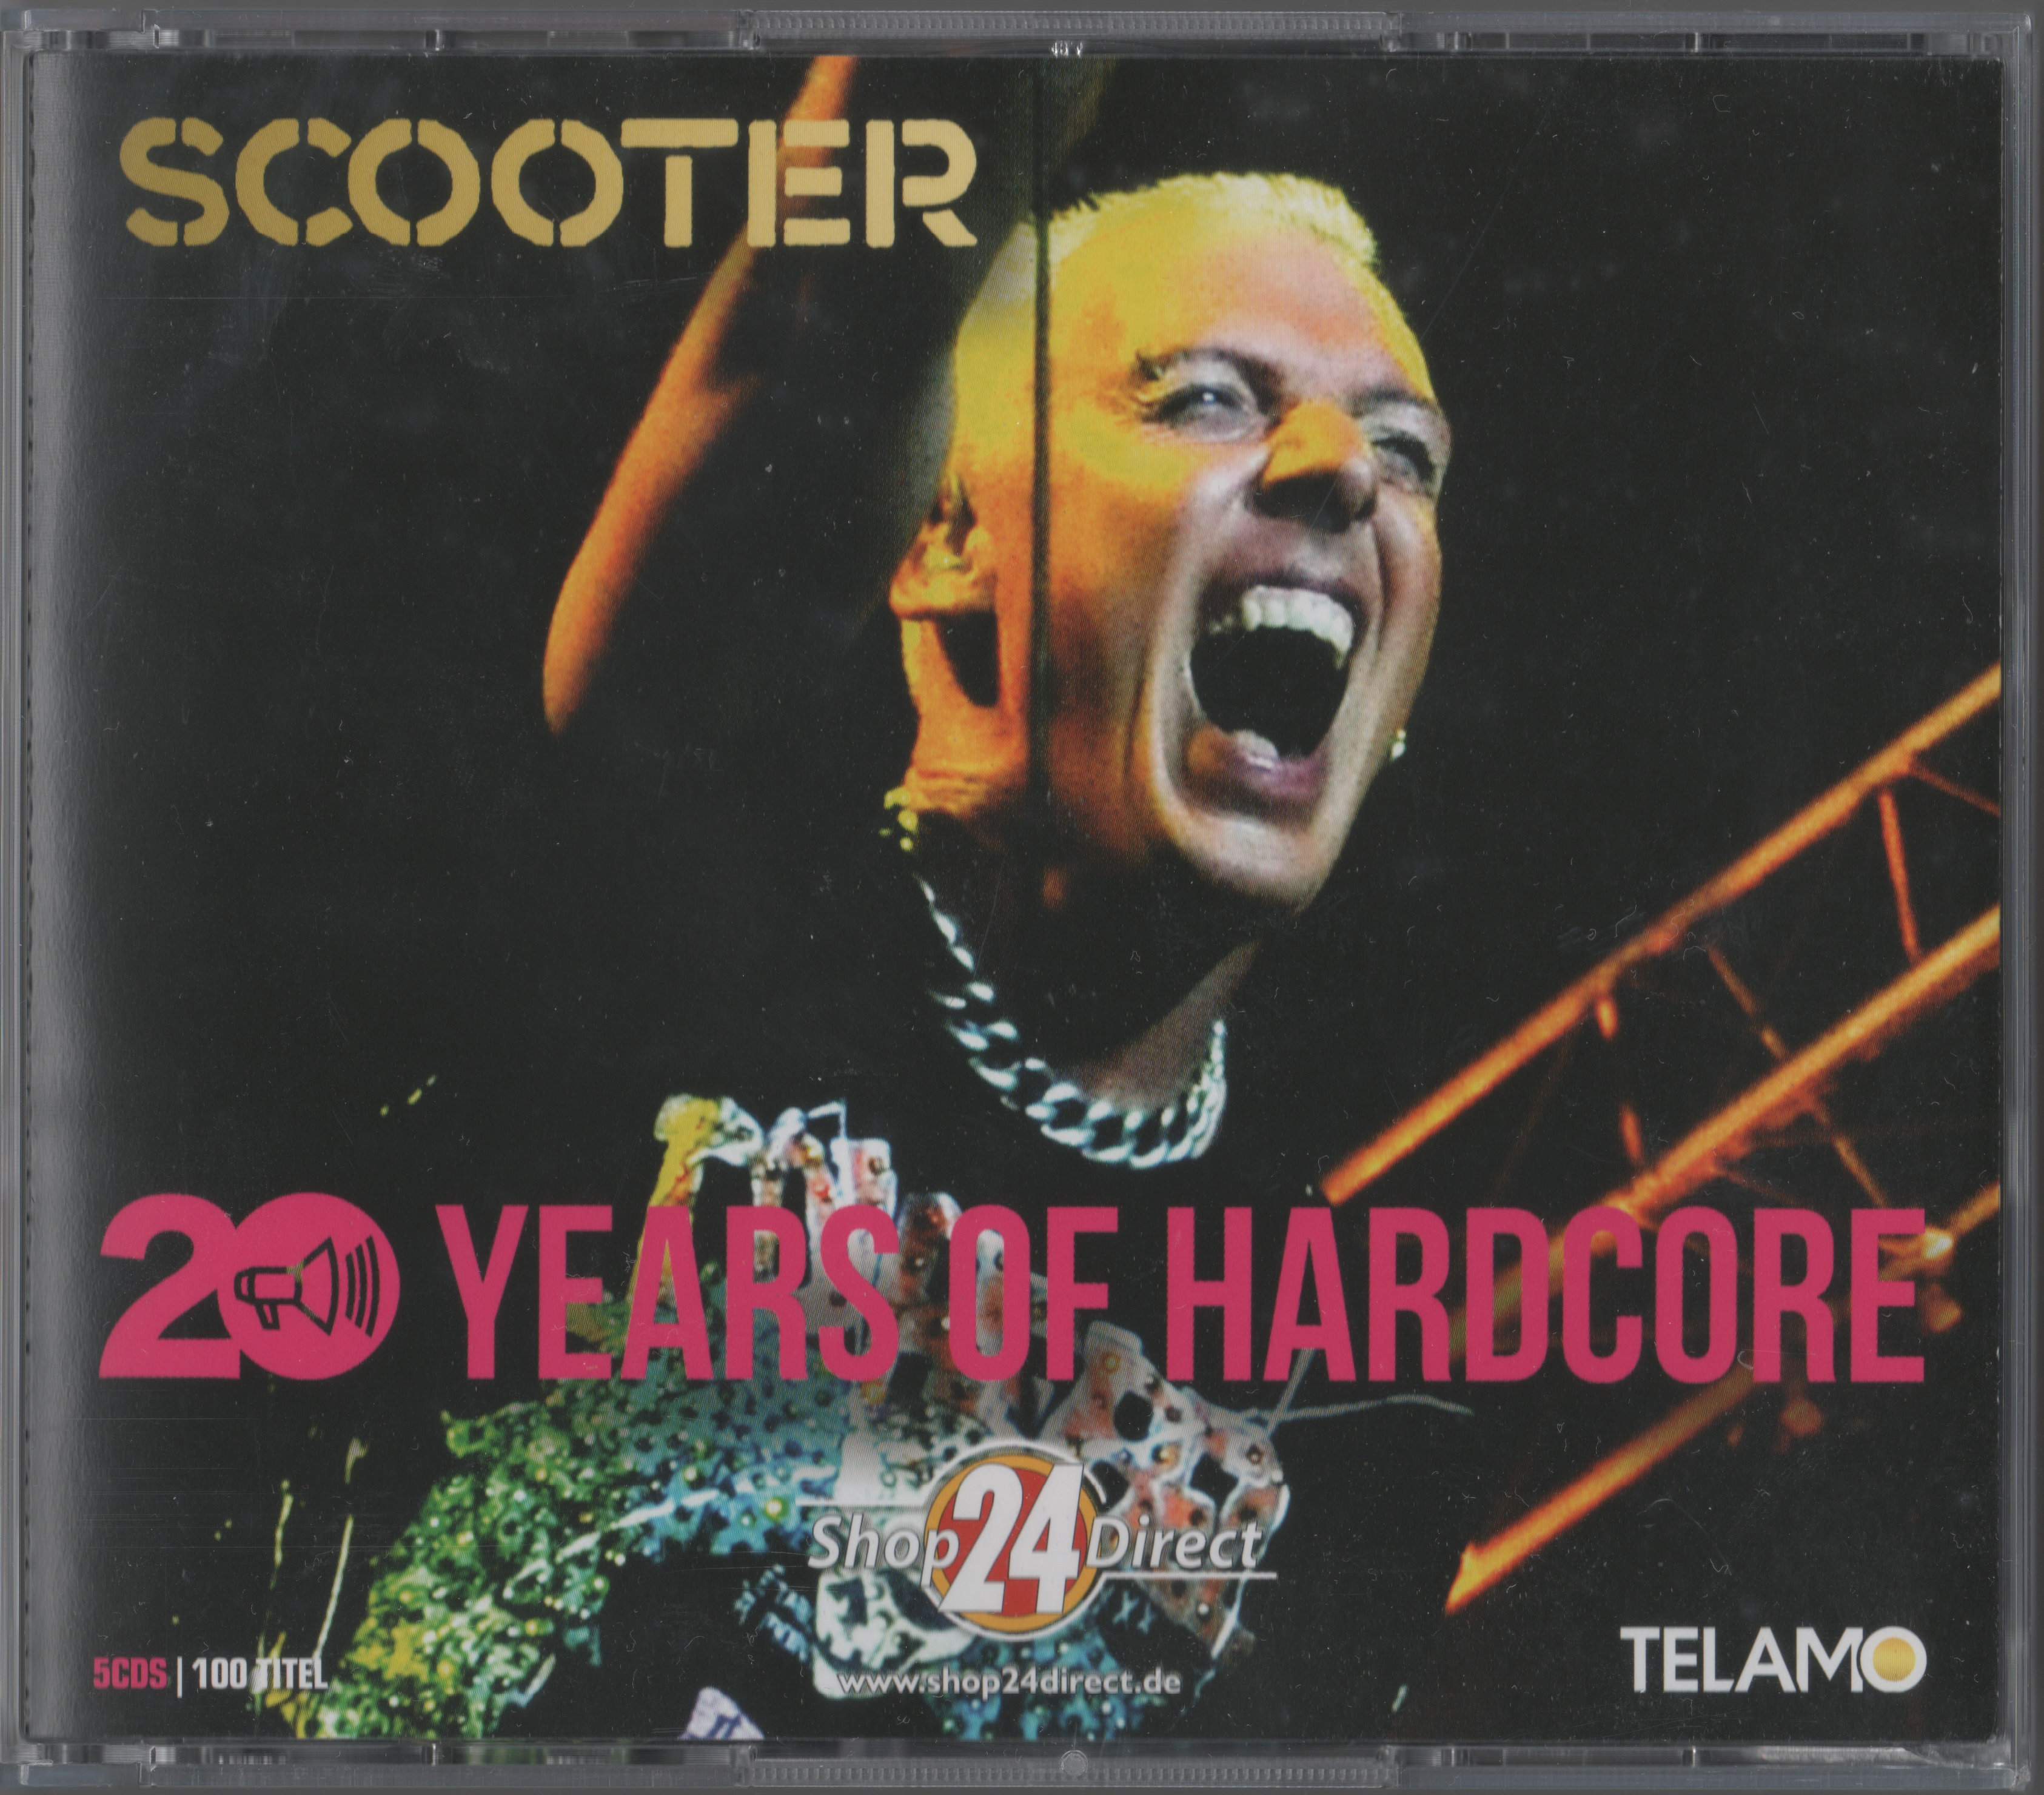 Scooter hardcore images